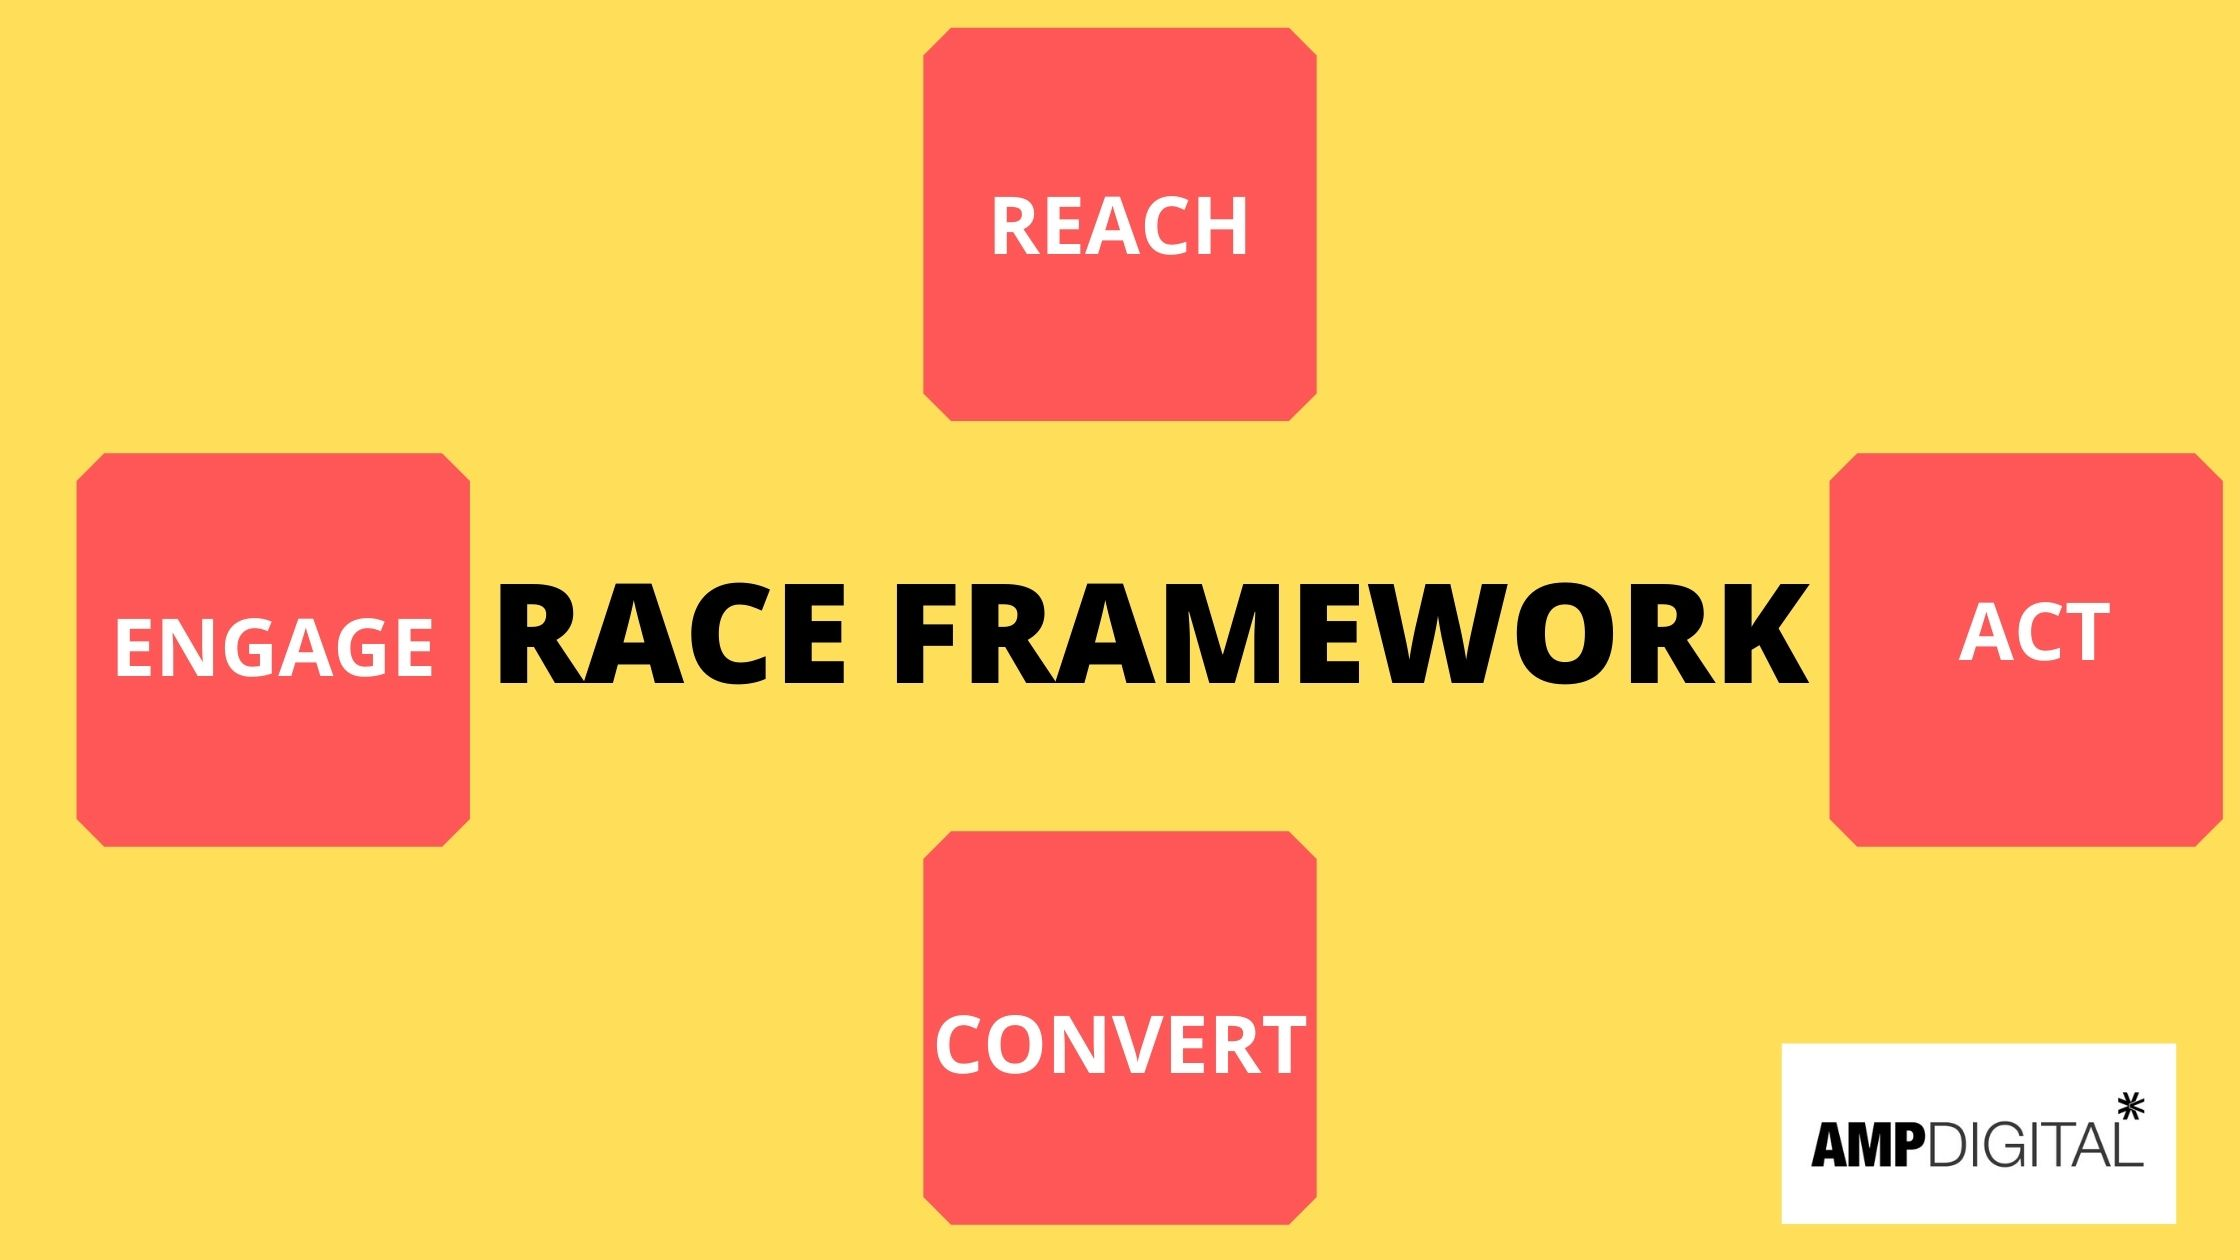 How Can I Use the RACE Framework In Digital Marketing?